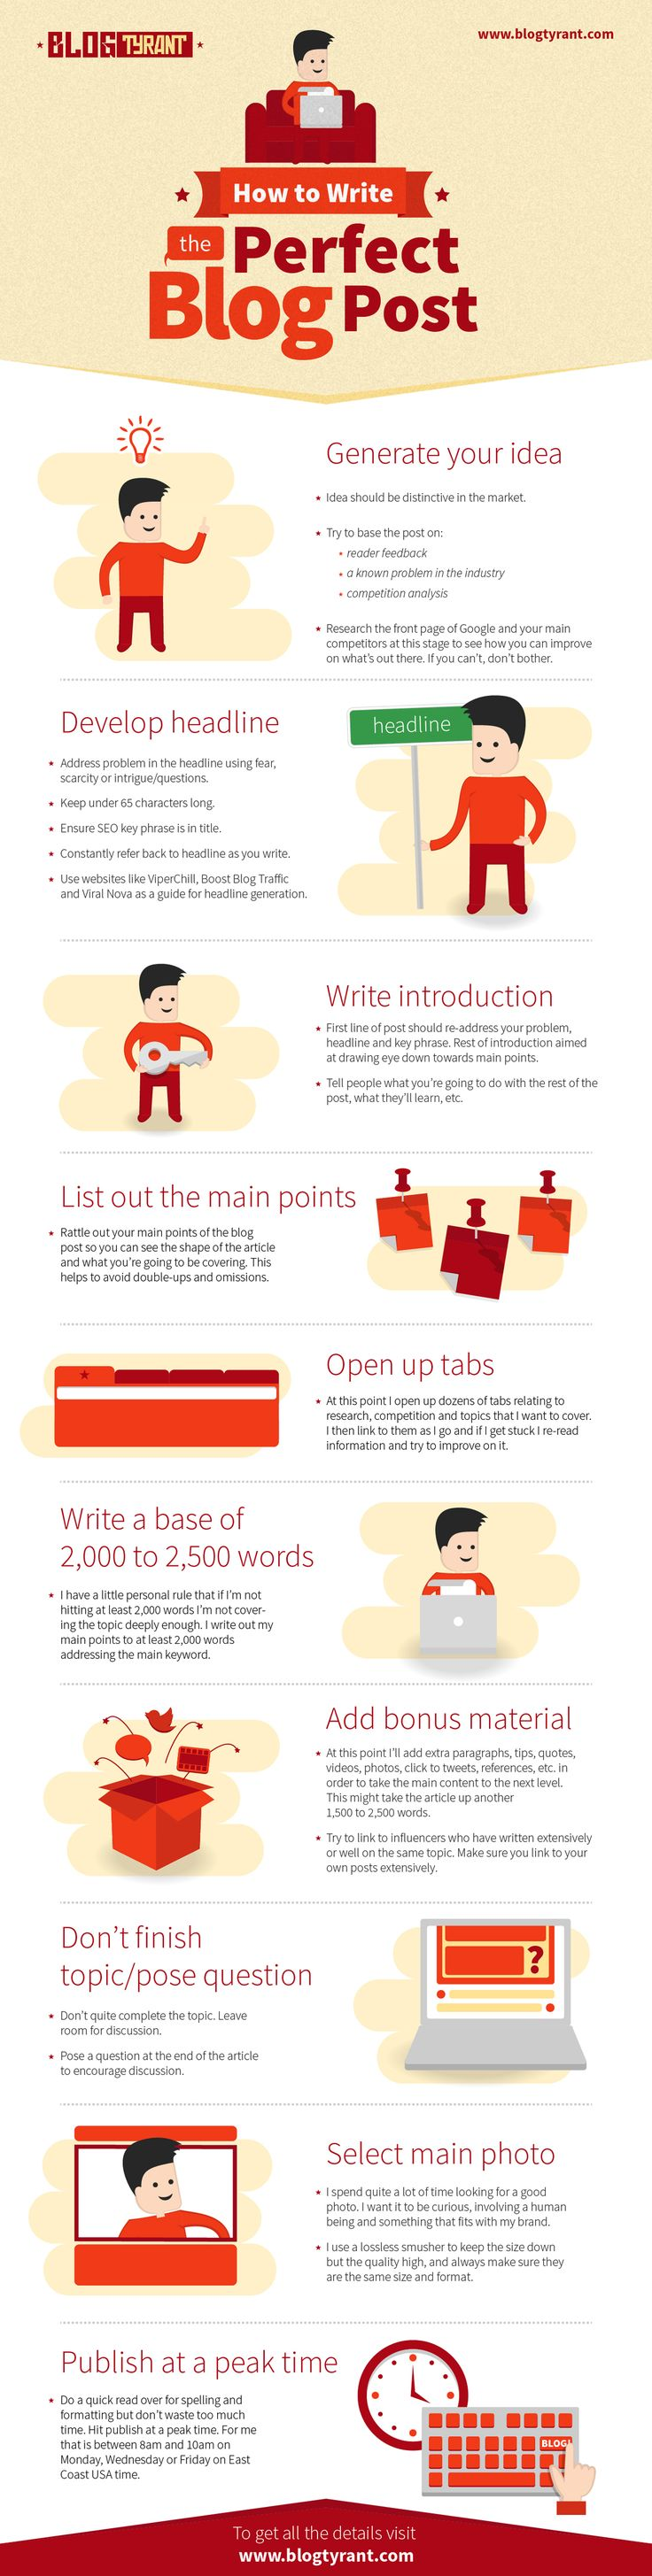 7 Awesome Tips For Writing Brilliant Blog Posts [Infographic]   Social Media Today